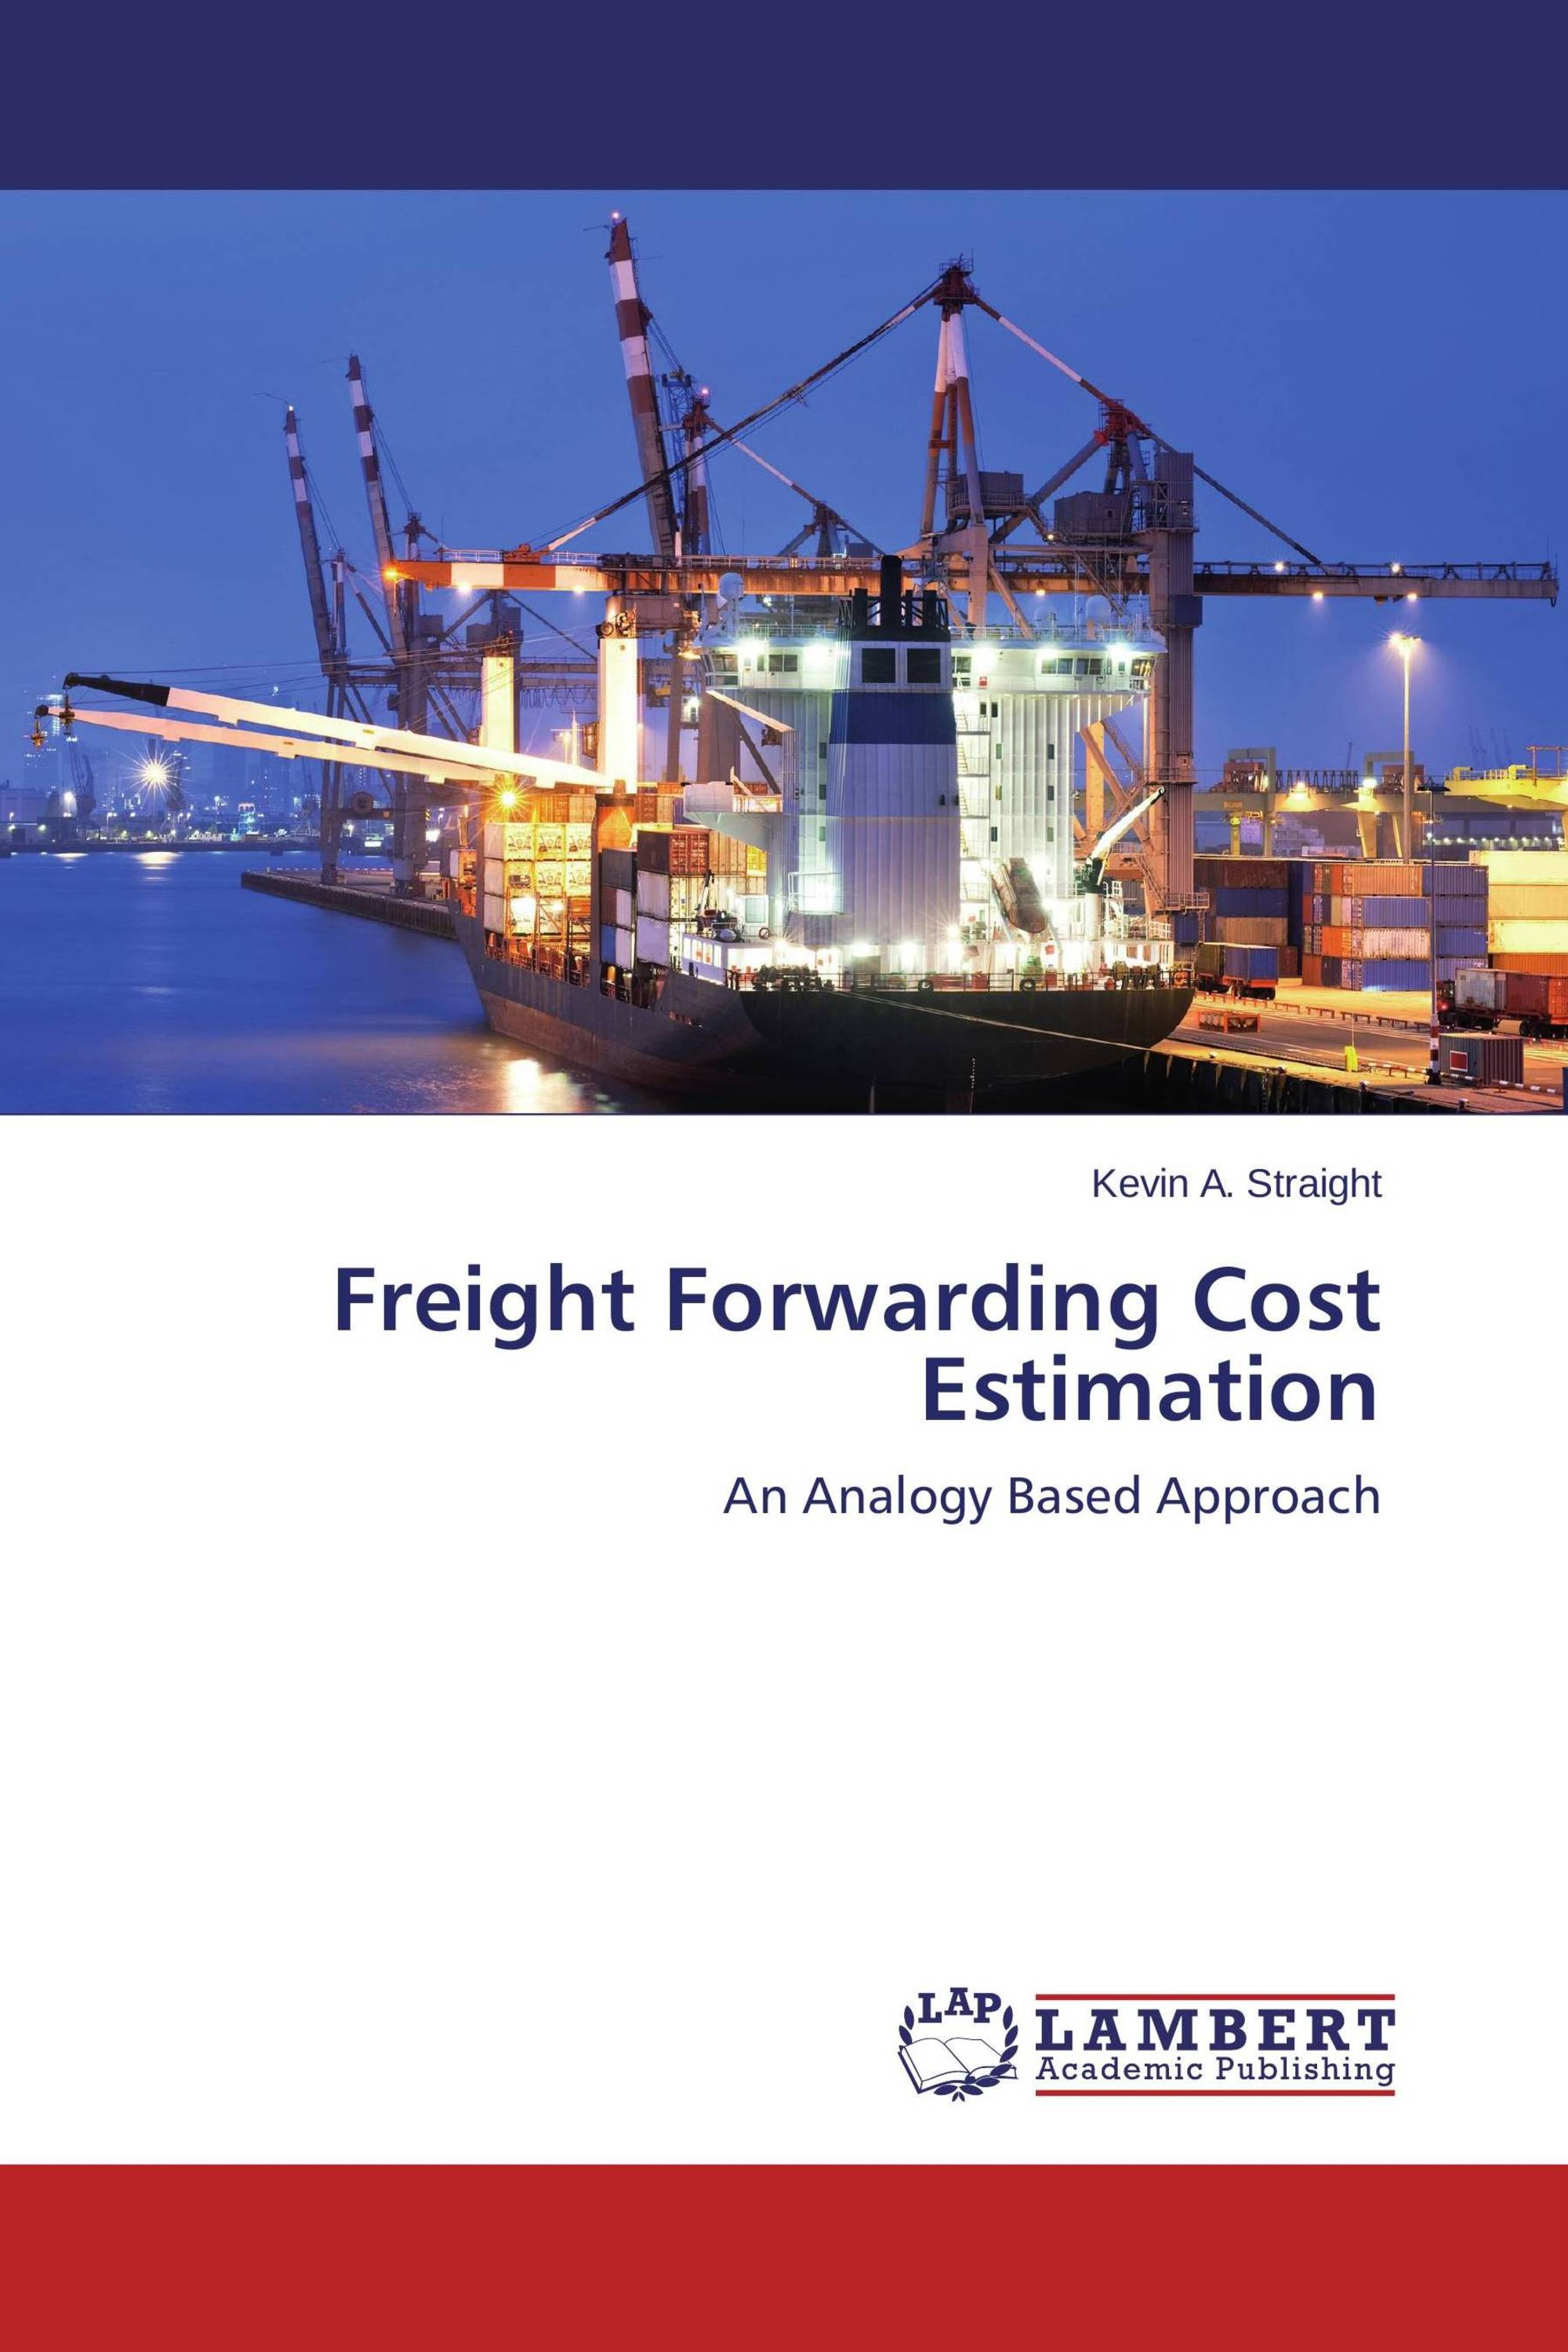 Freight Forwarding Cost Estimation